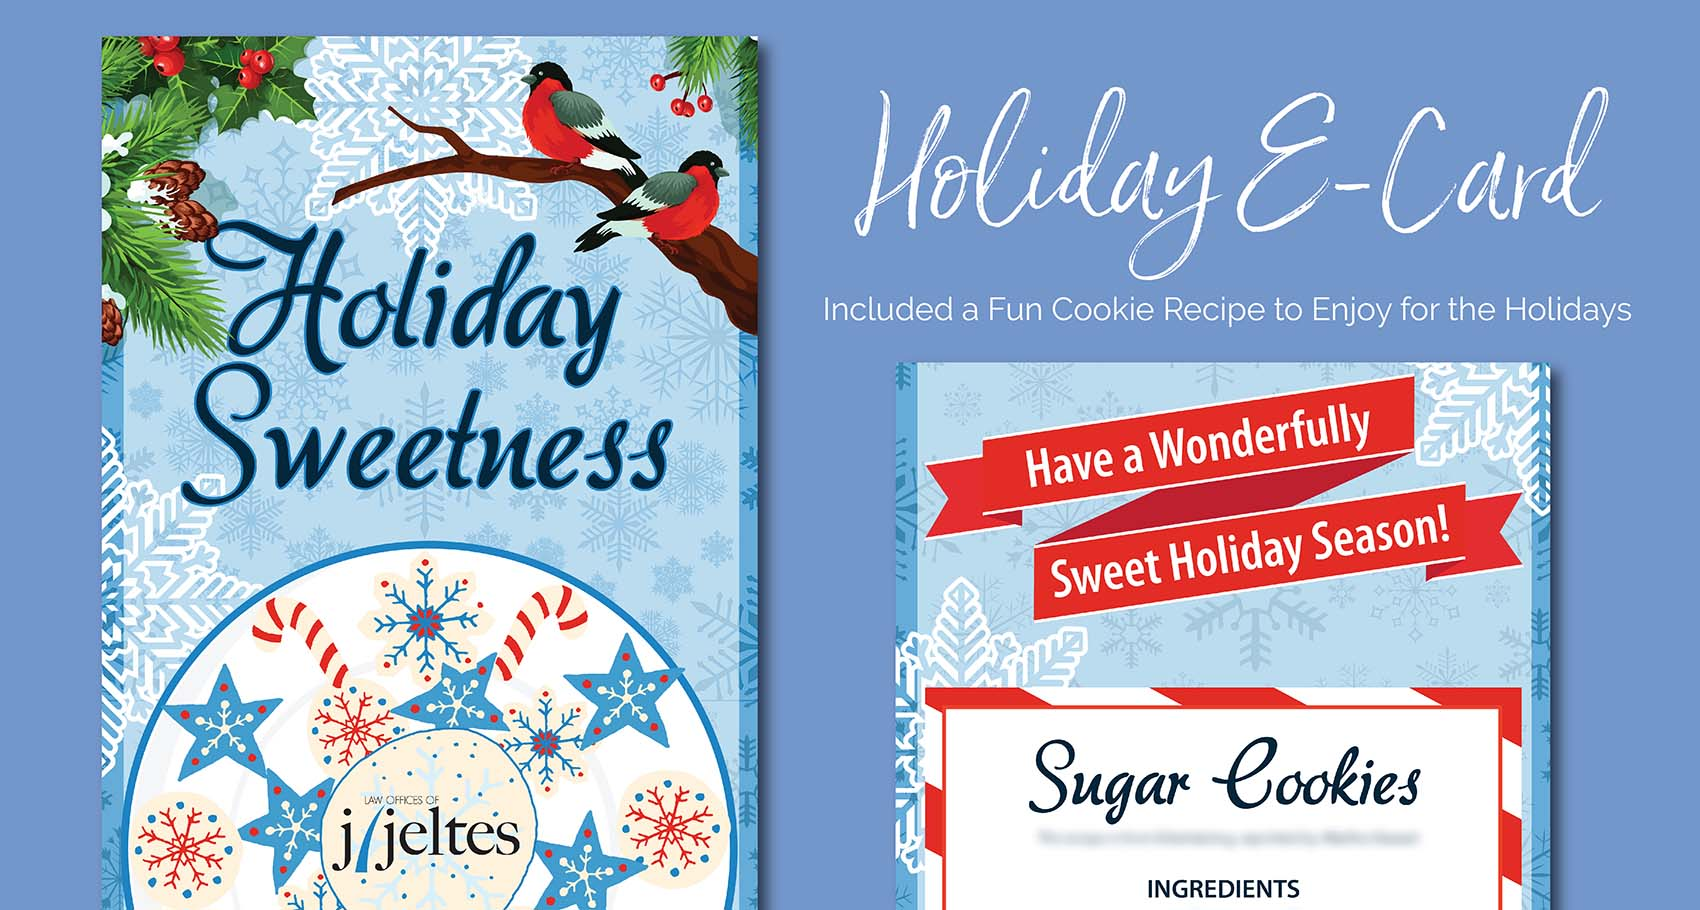 Holiday E-Card for J Jeltes